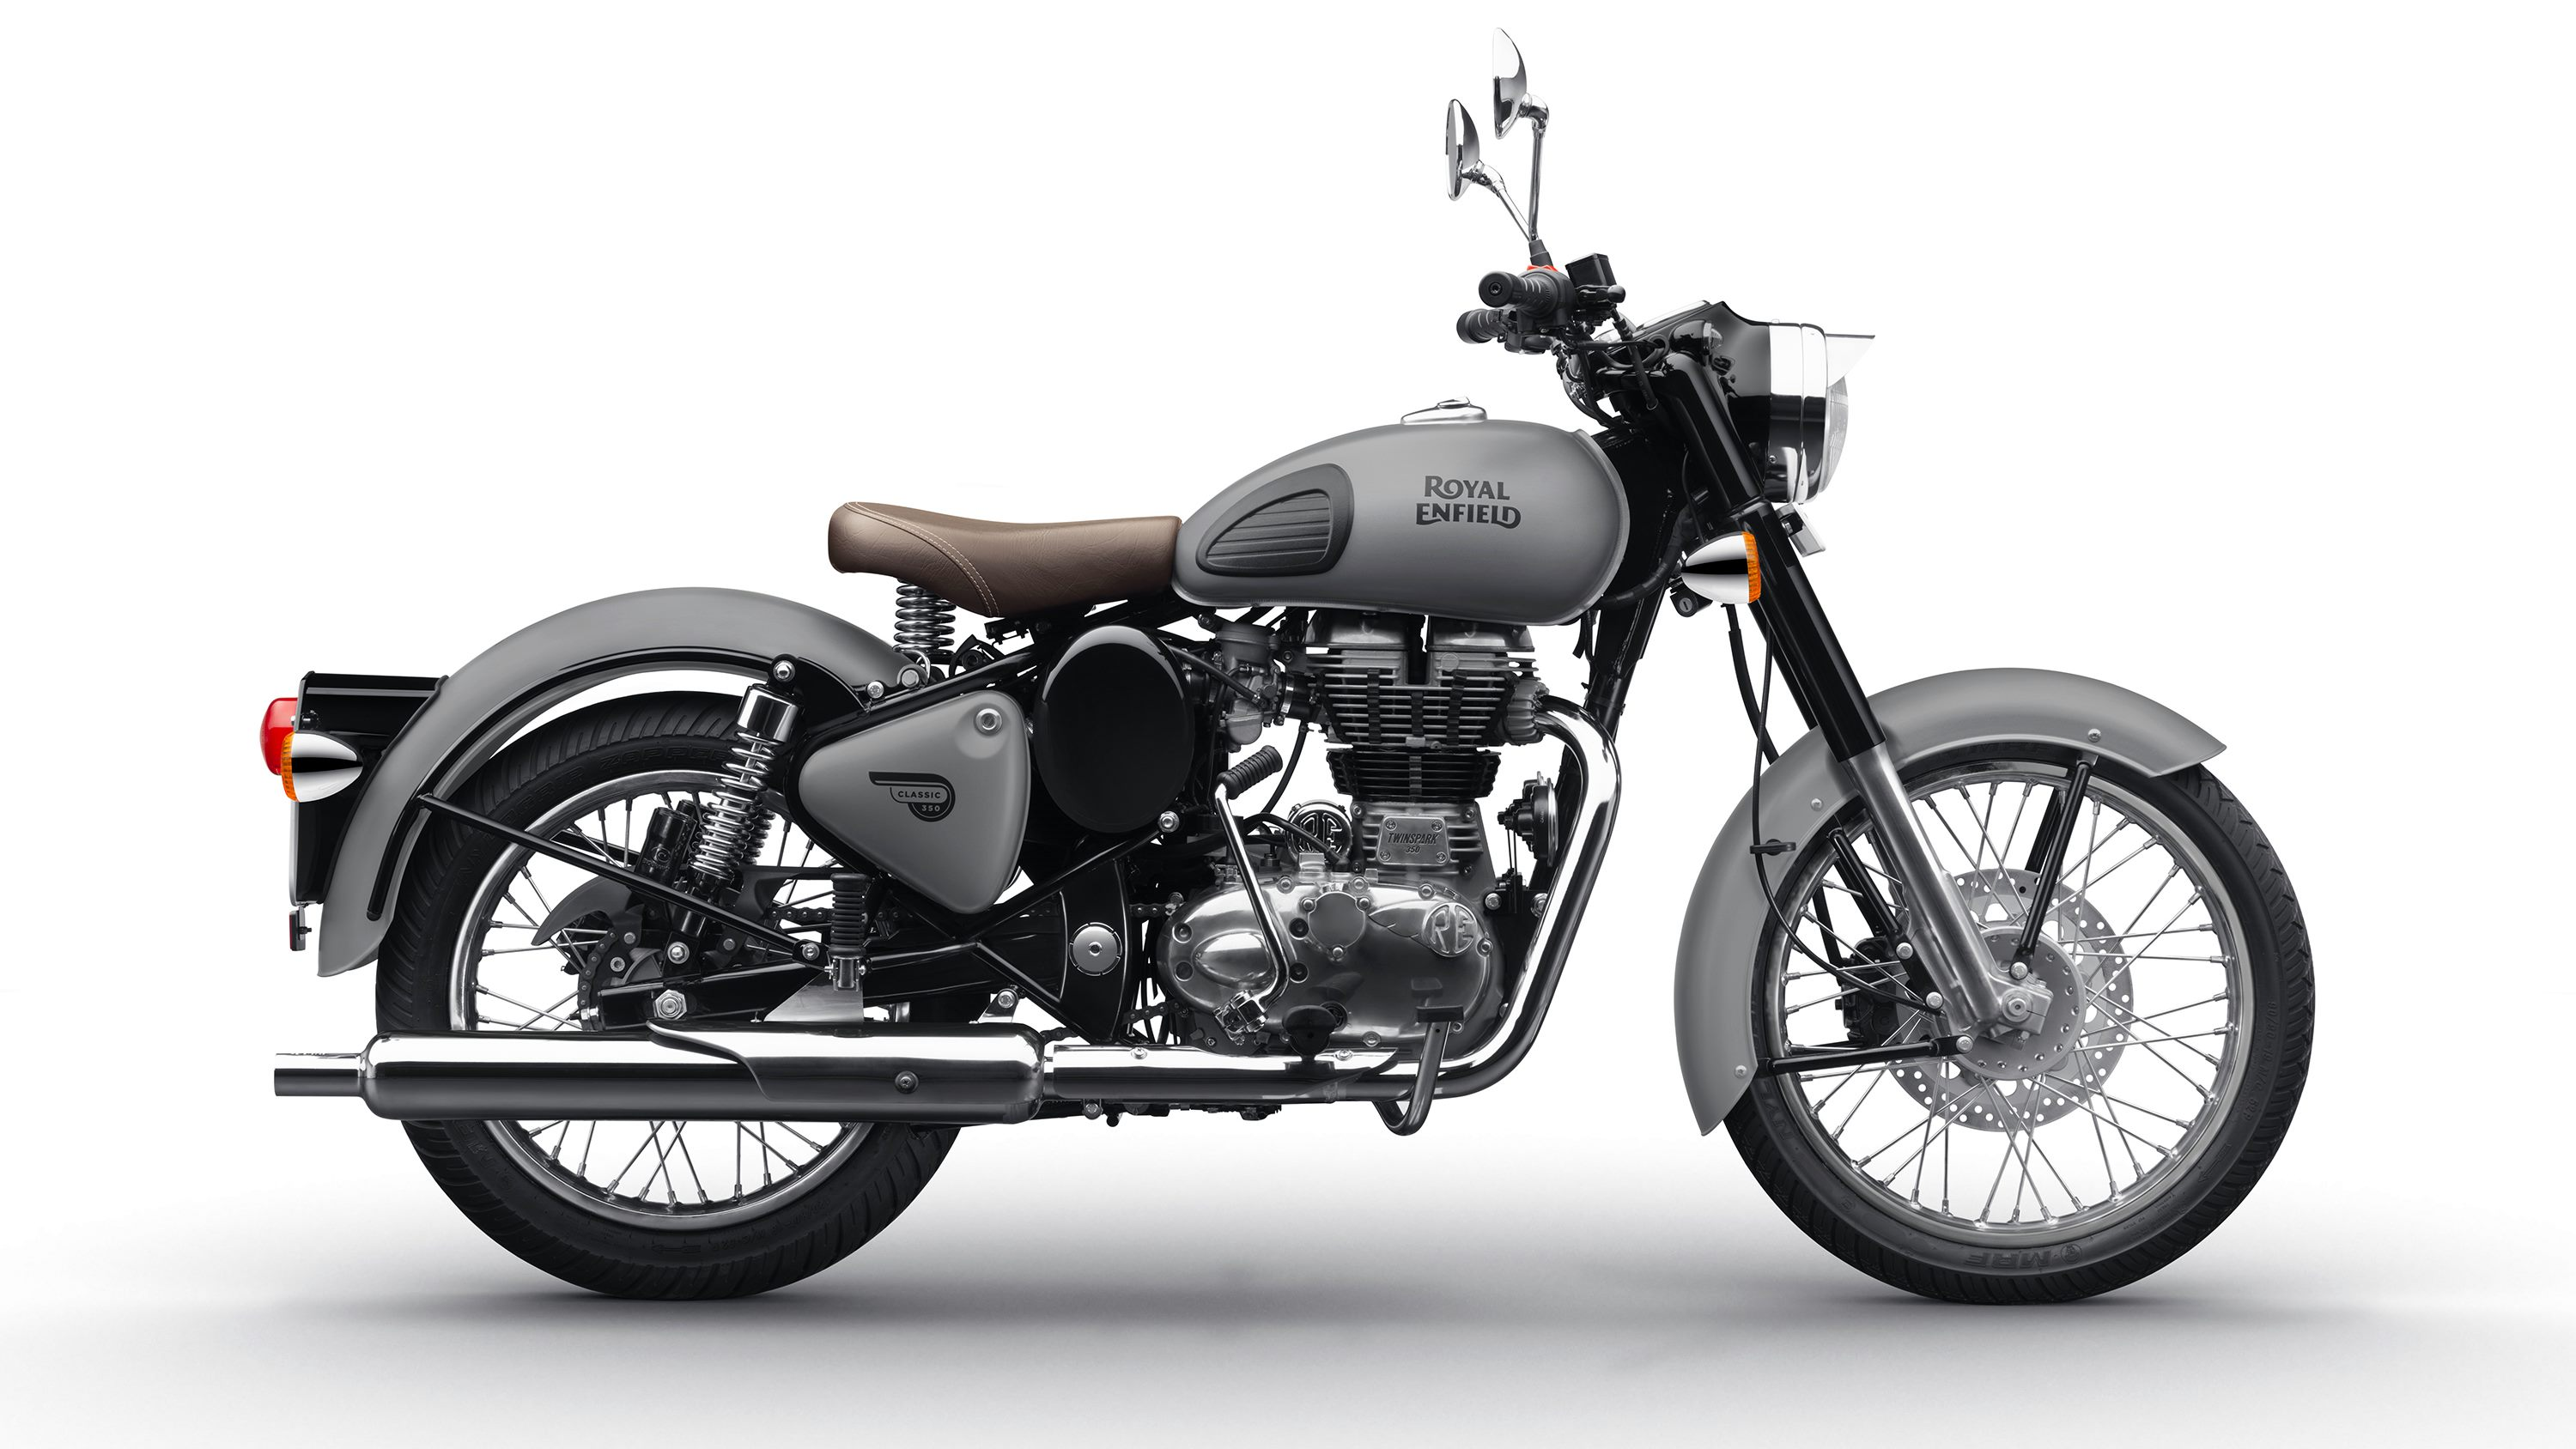 Royal Enfield Classic 350 Gunmetal Grey colour option